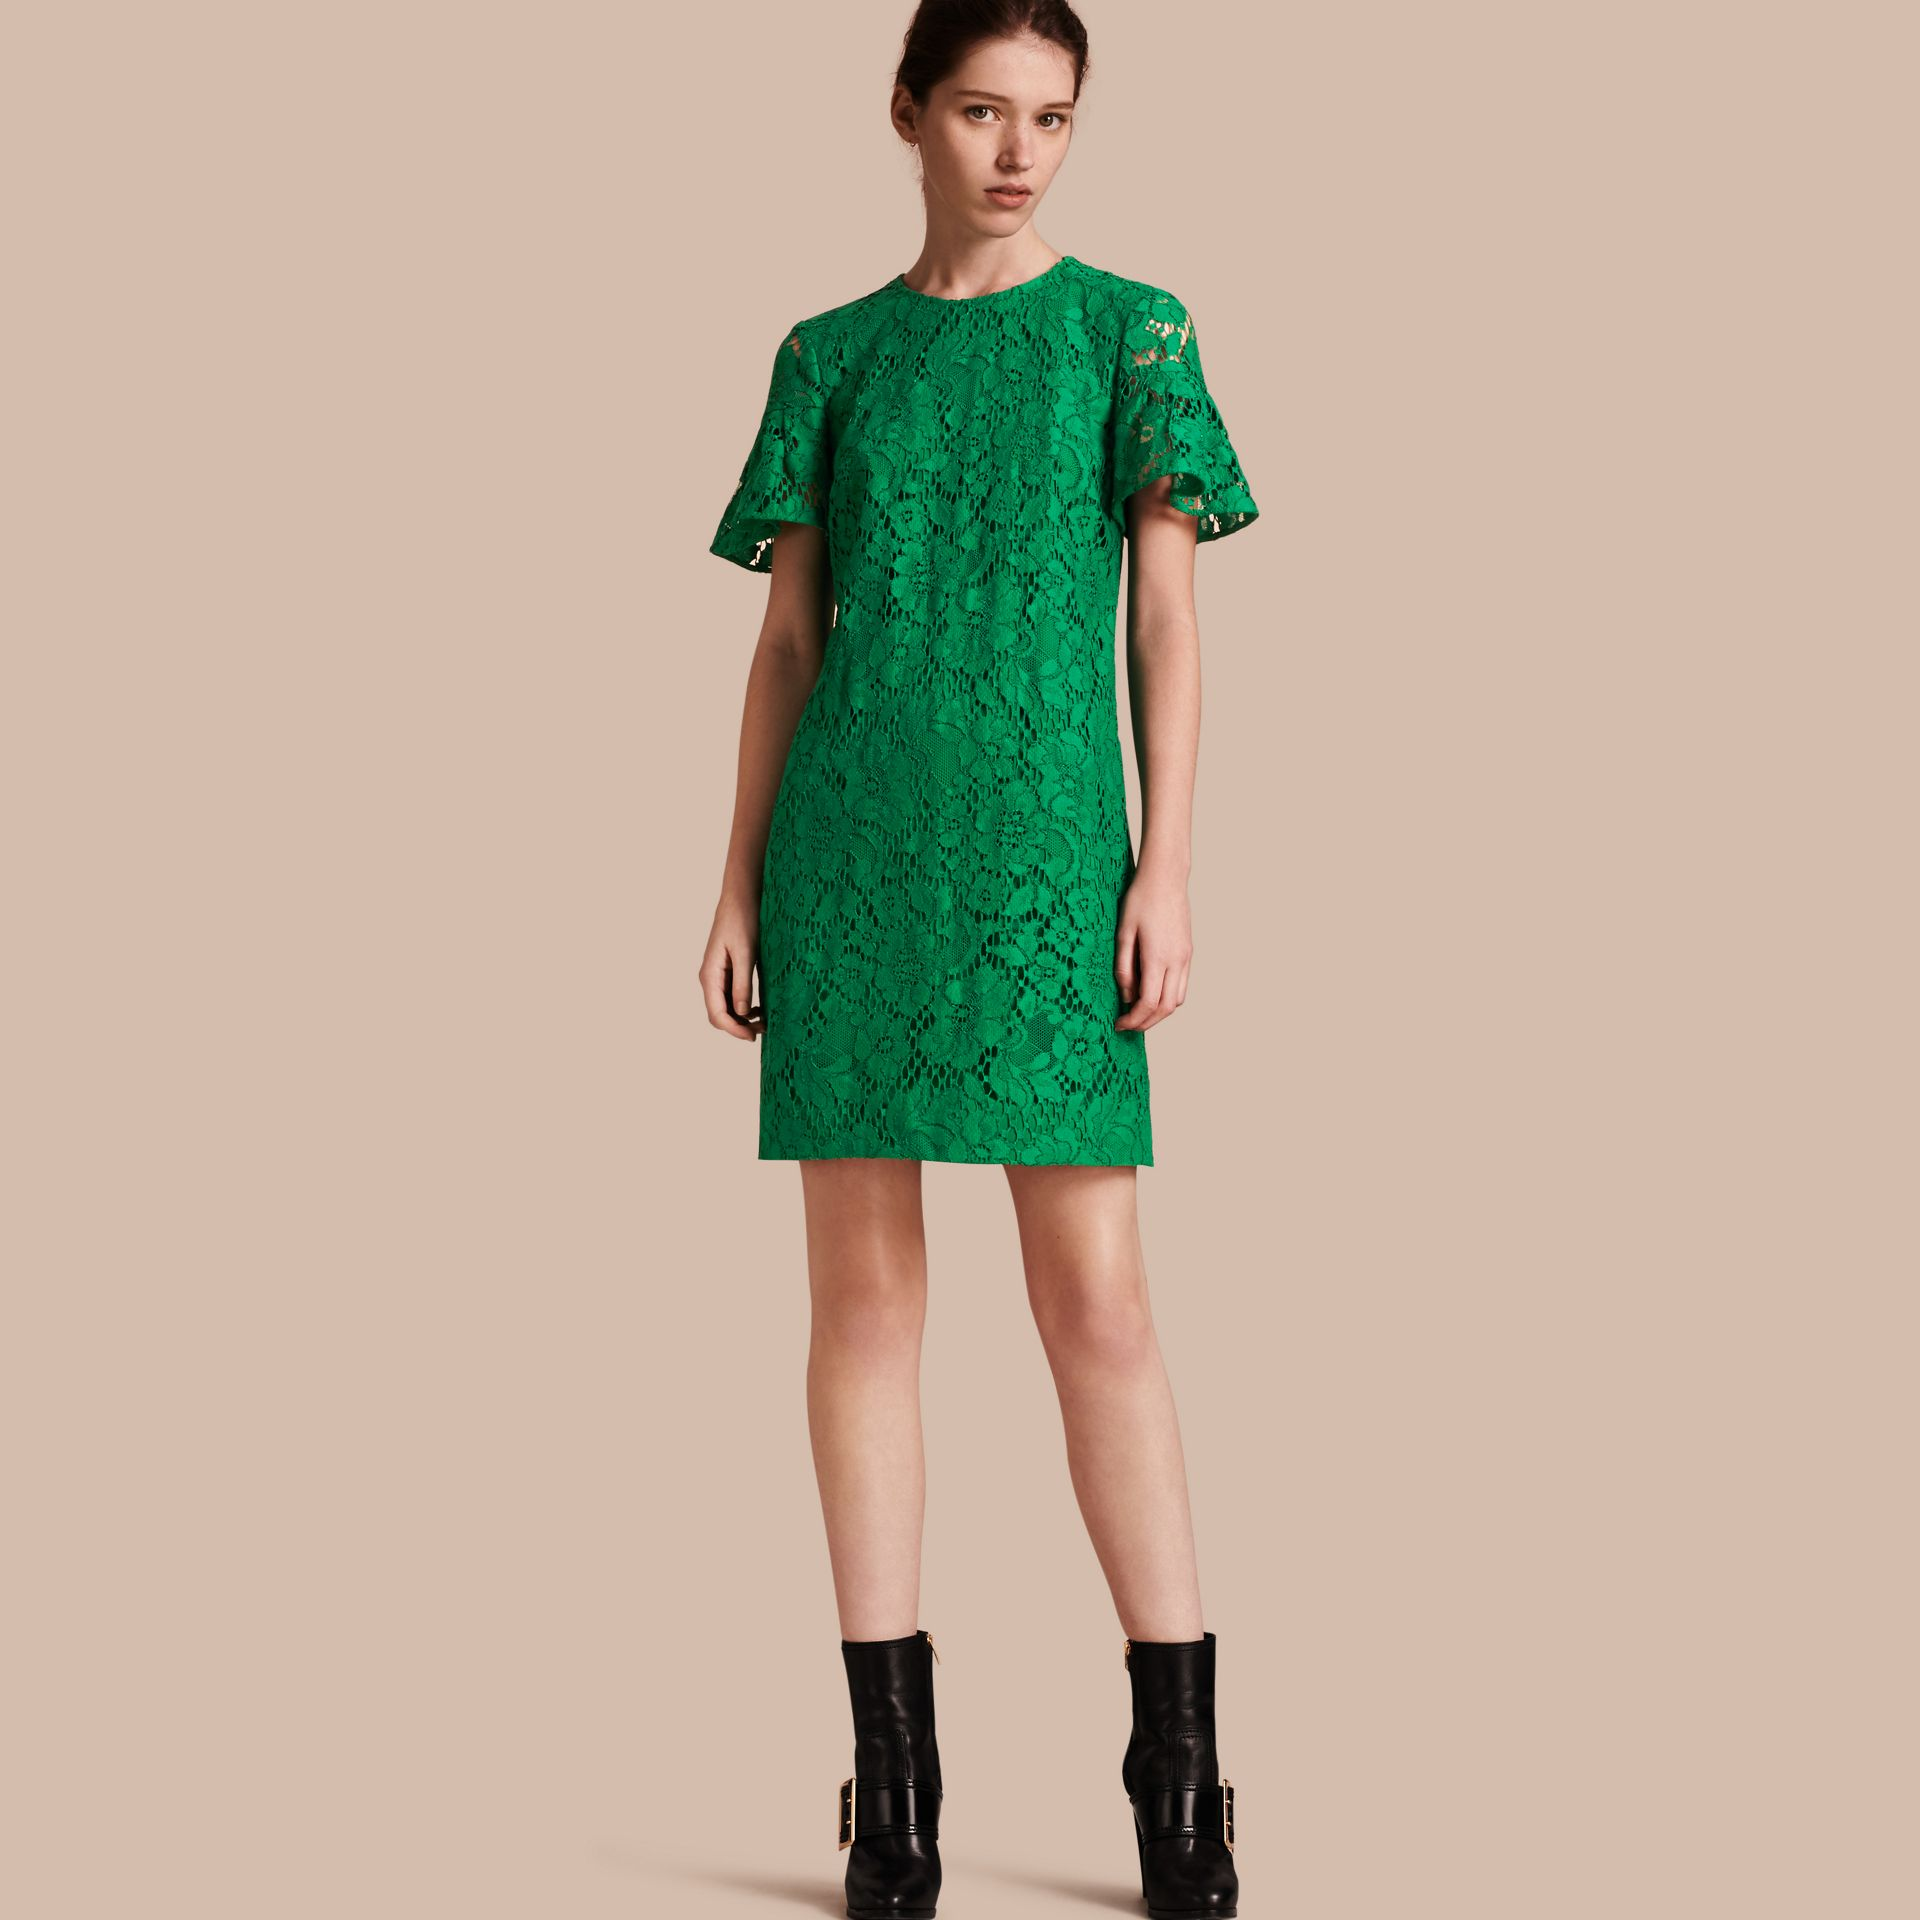 Macramé Lace Short Shift Dress with Ruffle Sleeves Kelly Green - gallery image 1